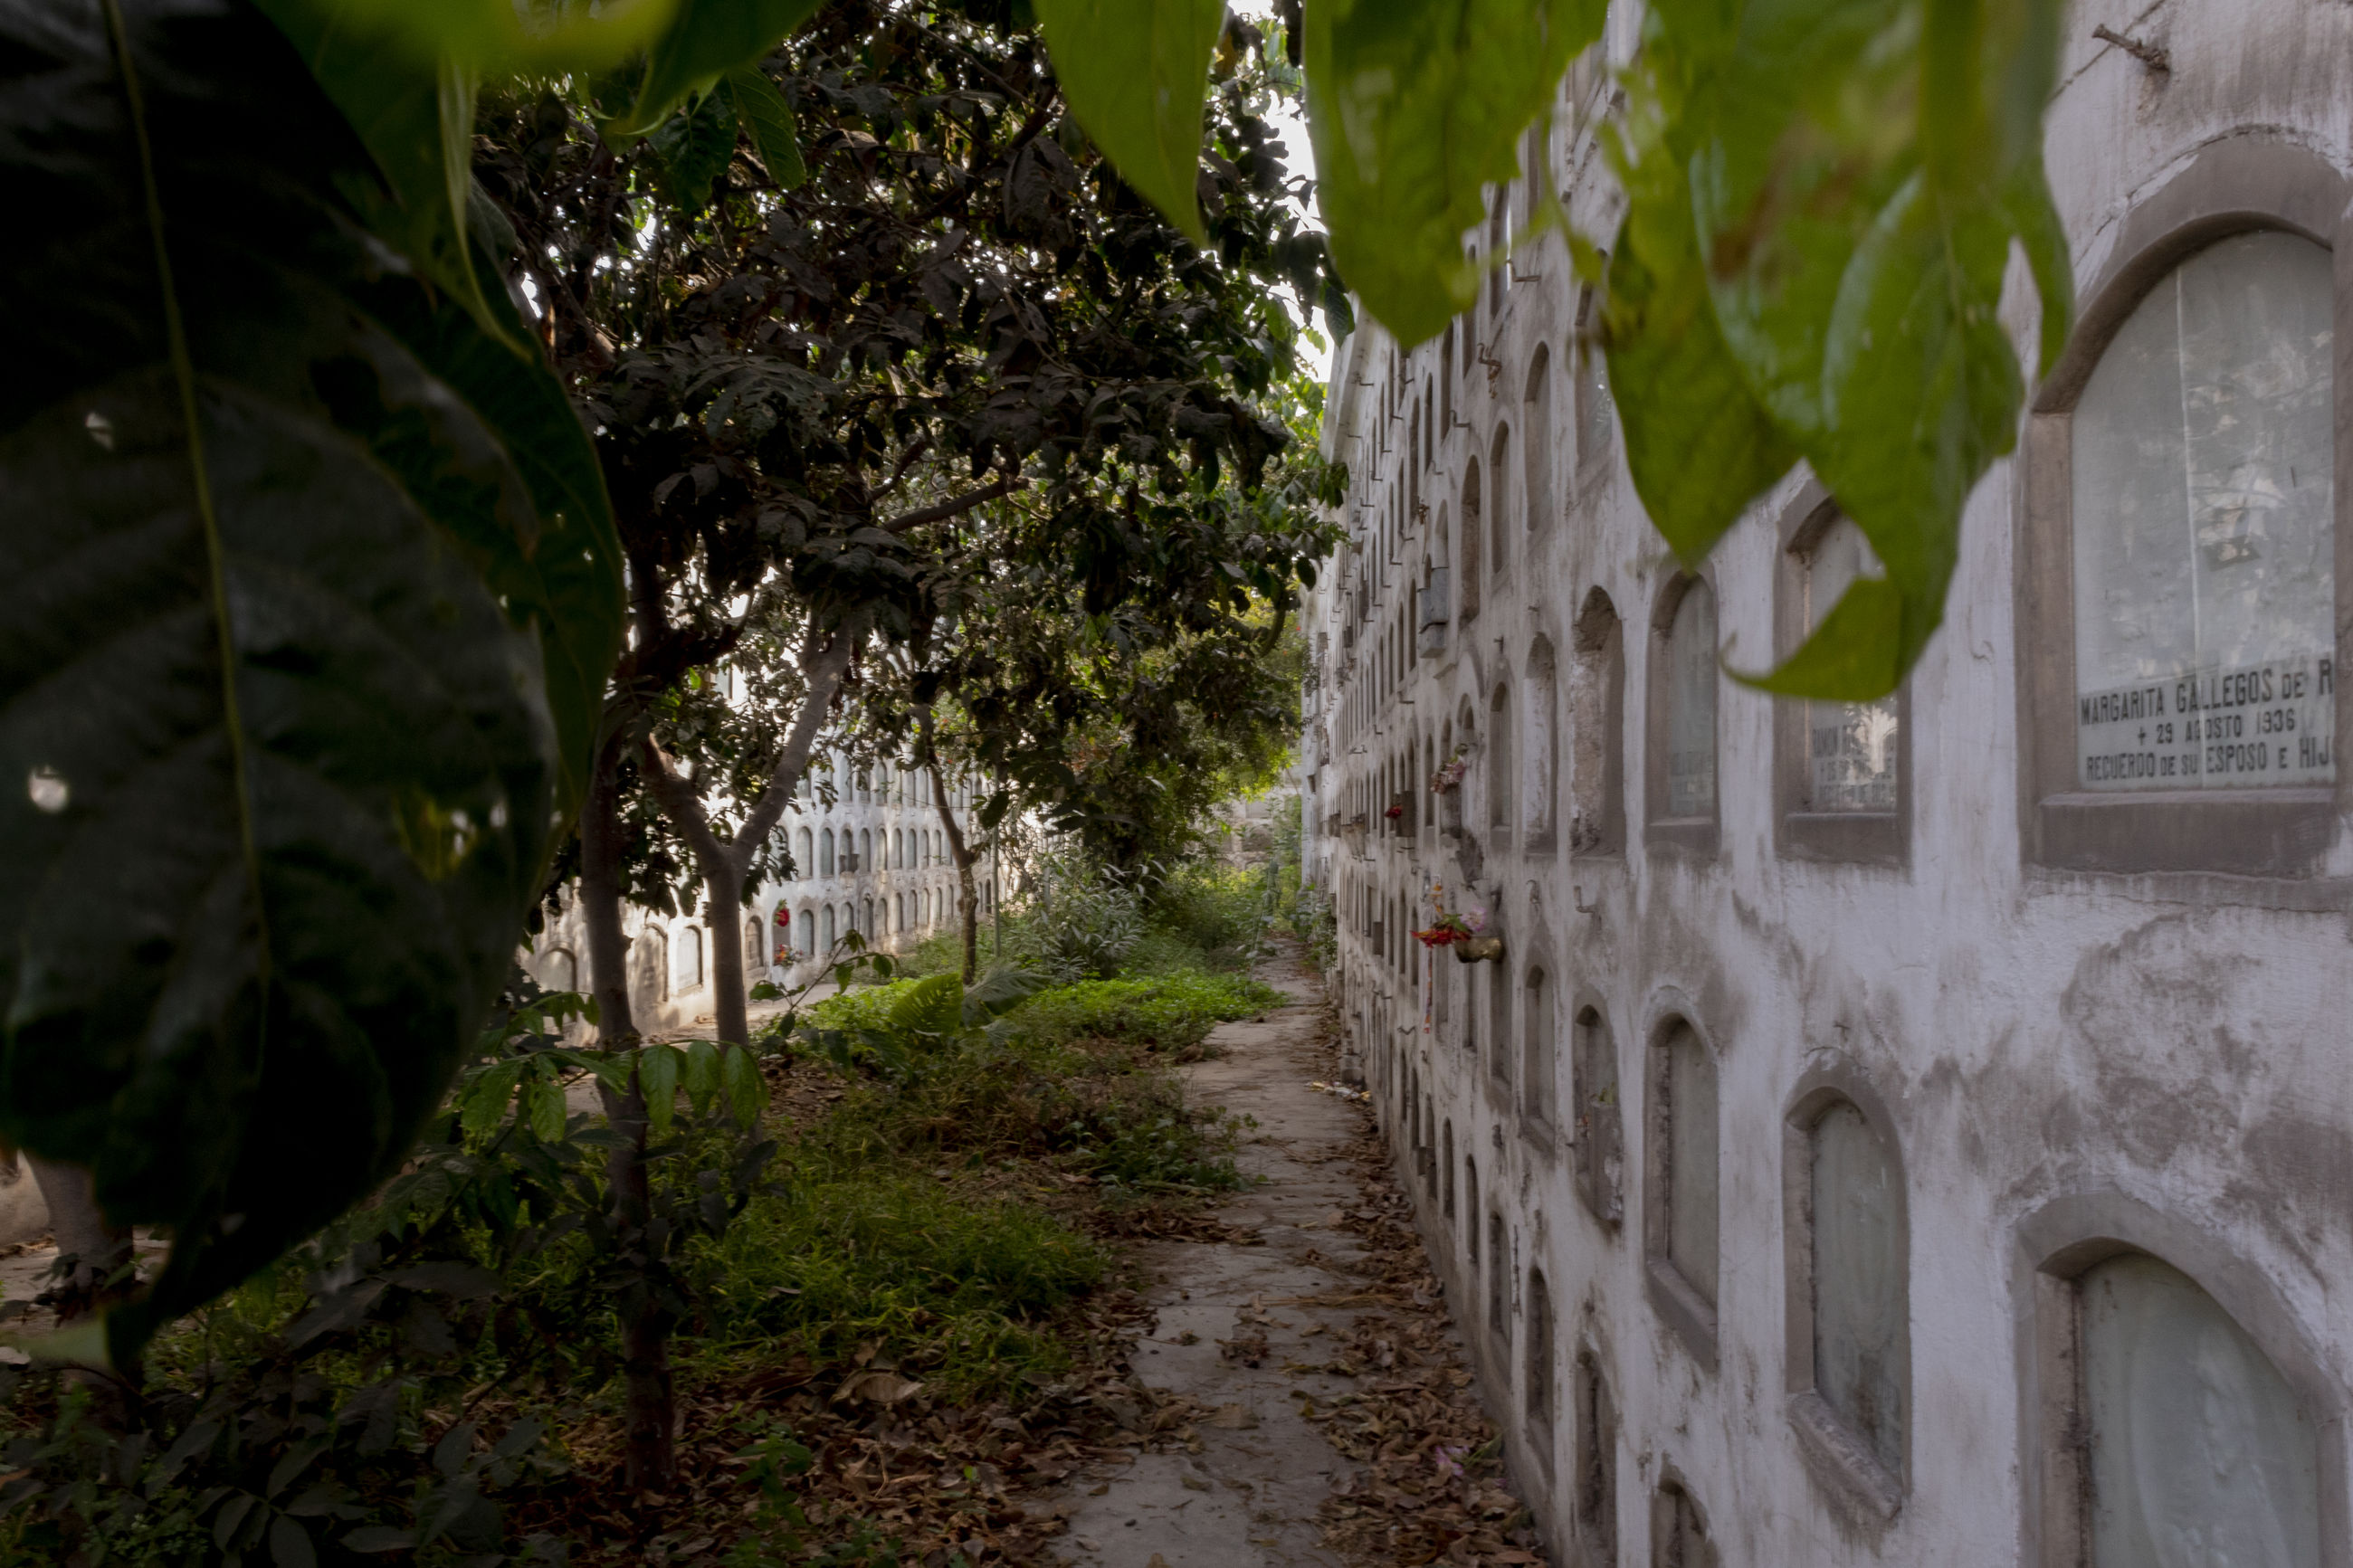 plant, architecture, tree, nature, no people, built structure, day, building exterior, green color, growth, outdoors, the way forward, building, leaf, transportation, city, direction, road, plant part, focus on foreground